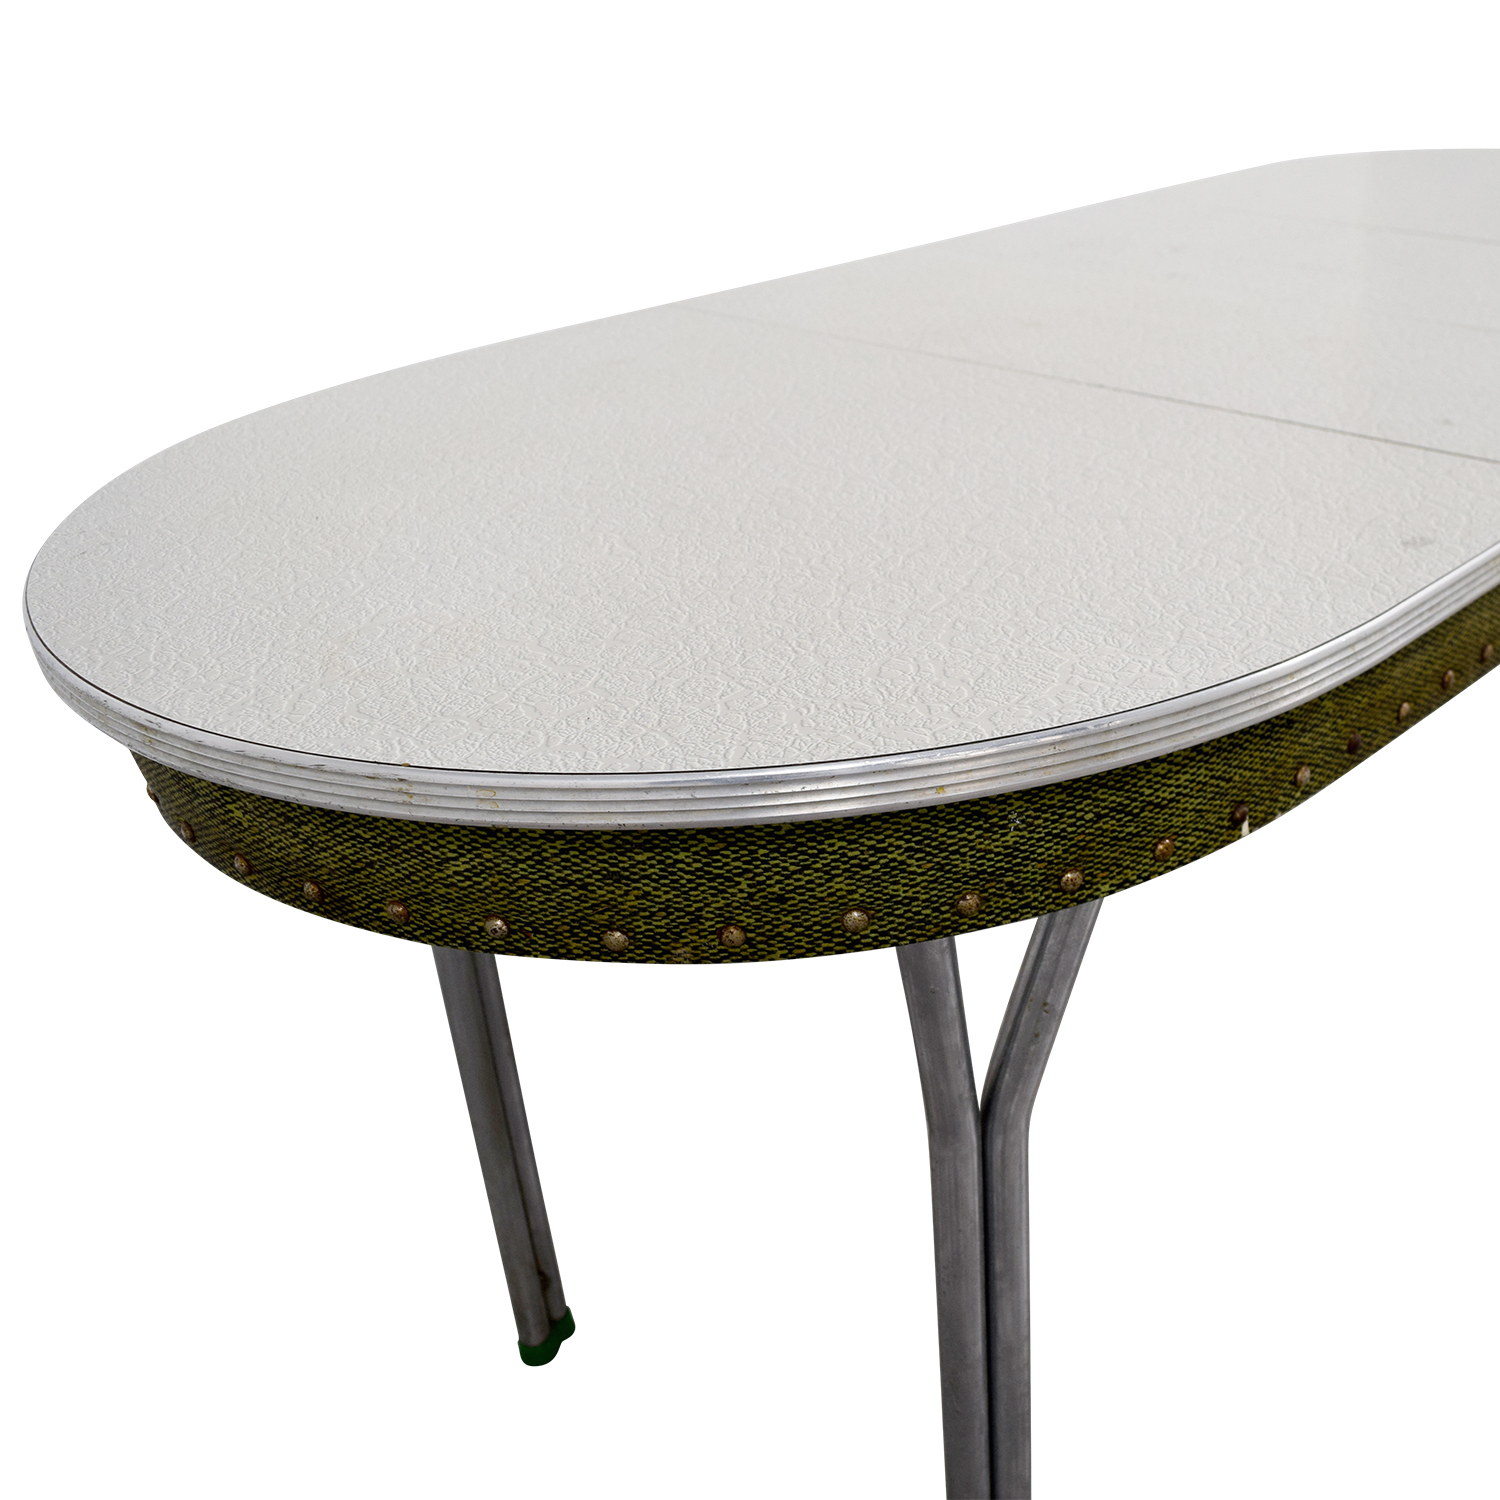 Vintage 1950s Green Formica Table with Inserts sale